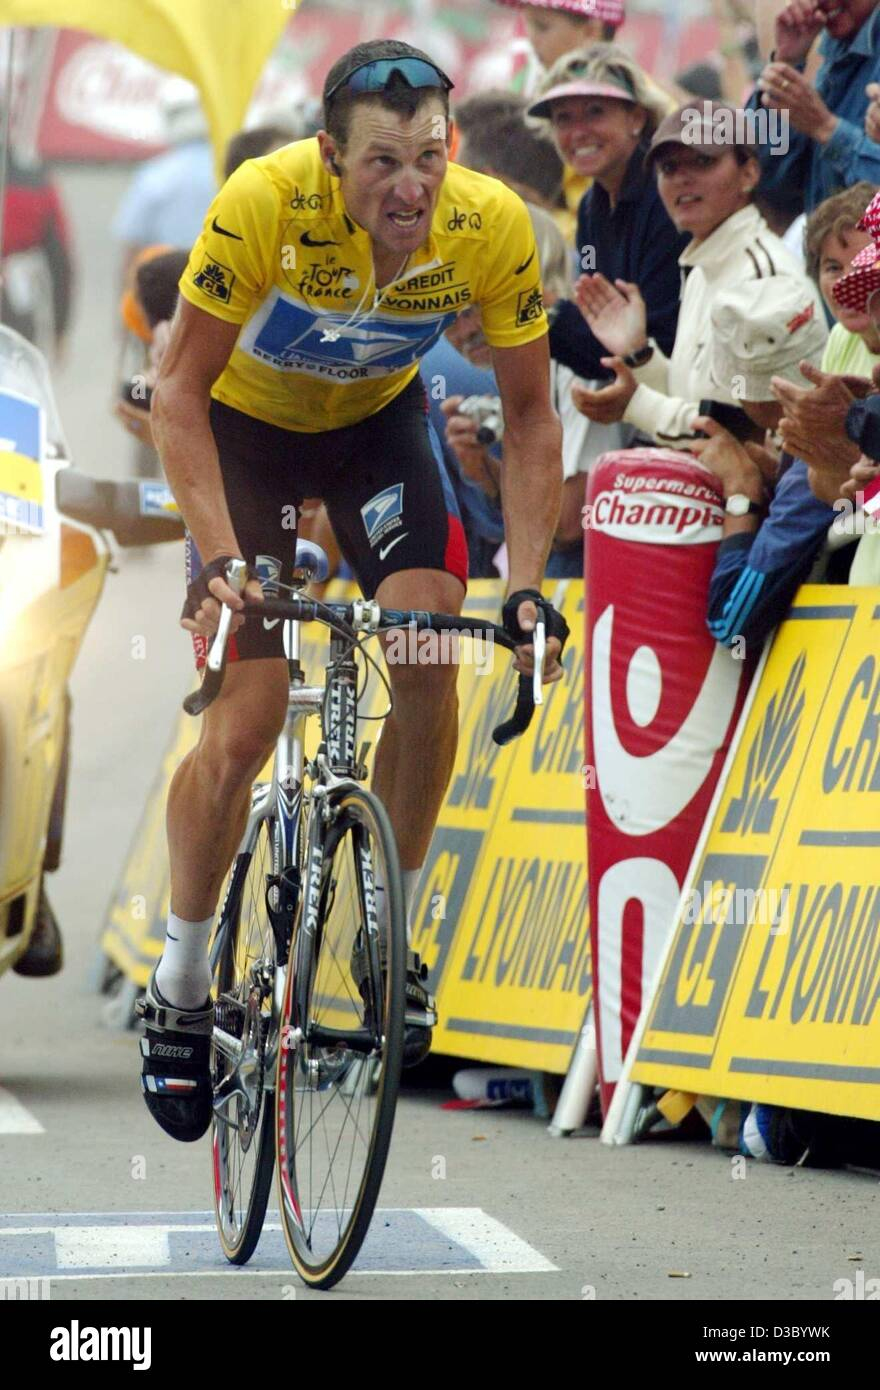 Us Lance Armstrong Team Stock Photos   Us Lance Armstrong Team Stock ... add45ecb2